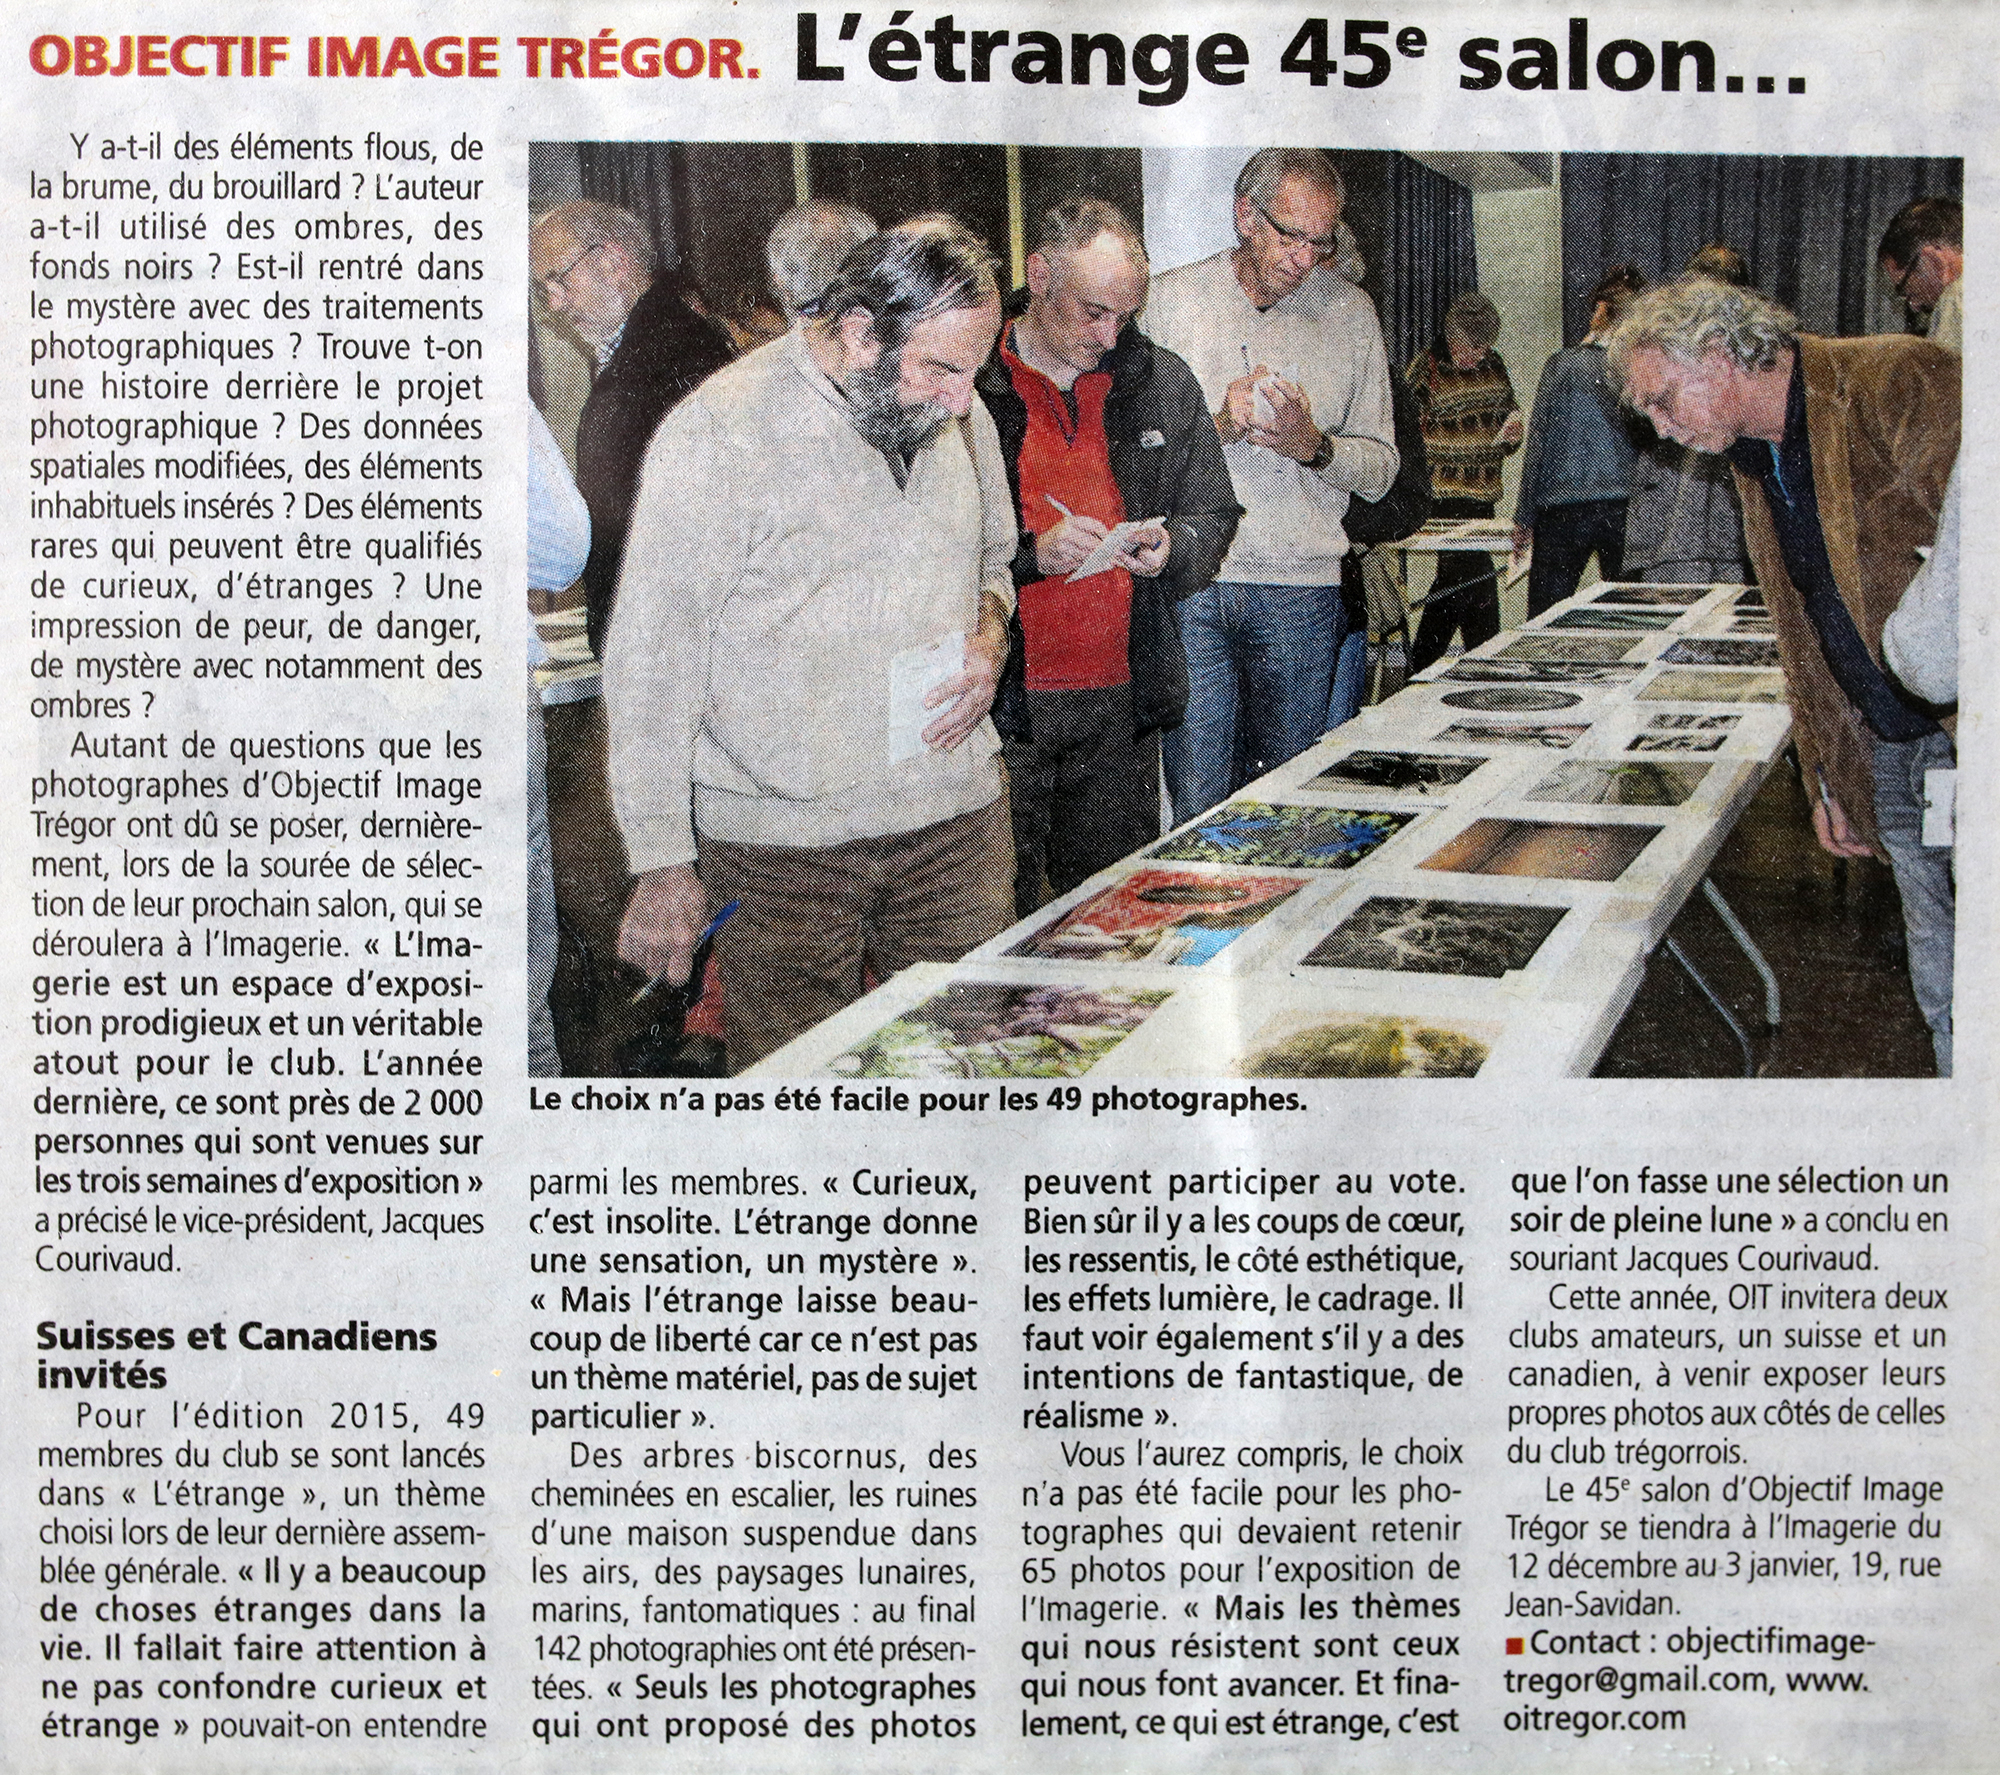 2015-11-05 -Article-Tregor-selection-photos-OIT-45eme_salon